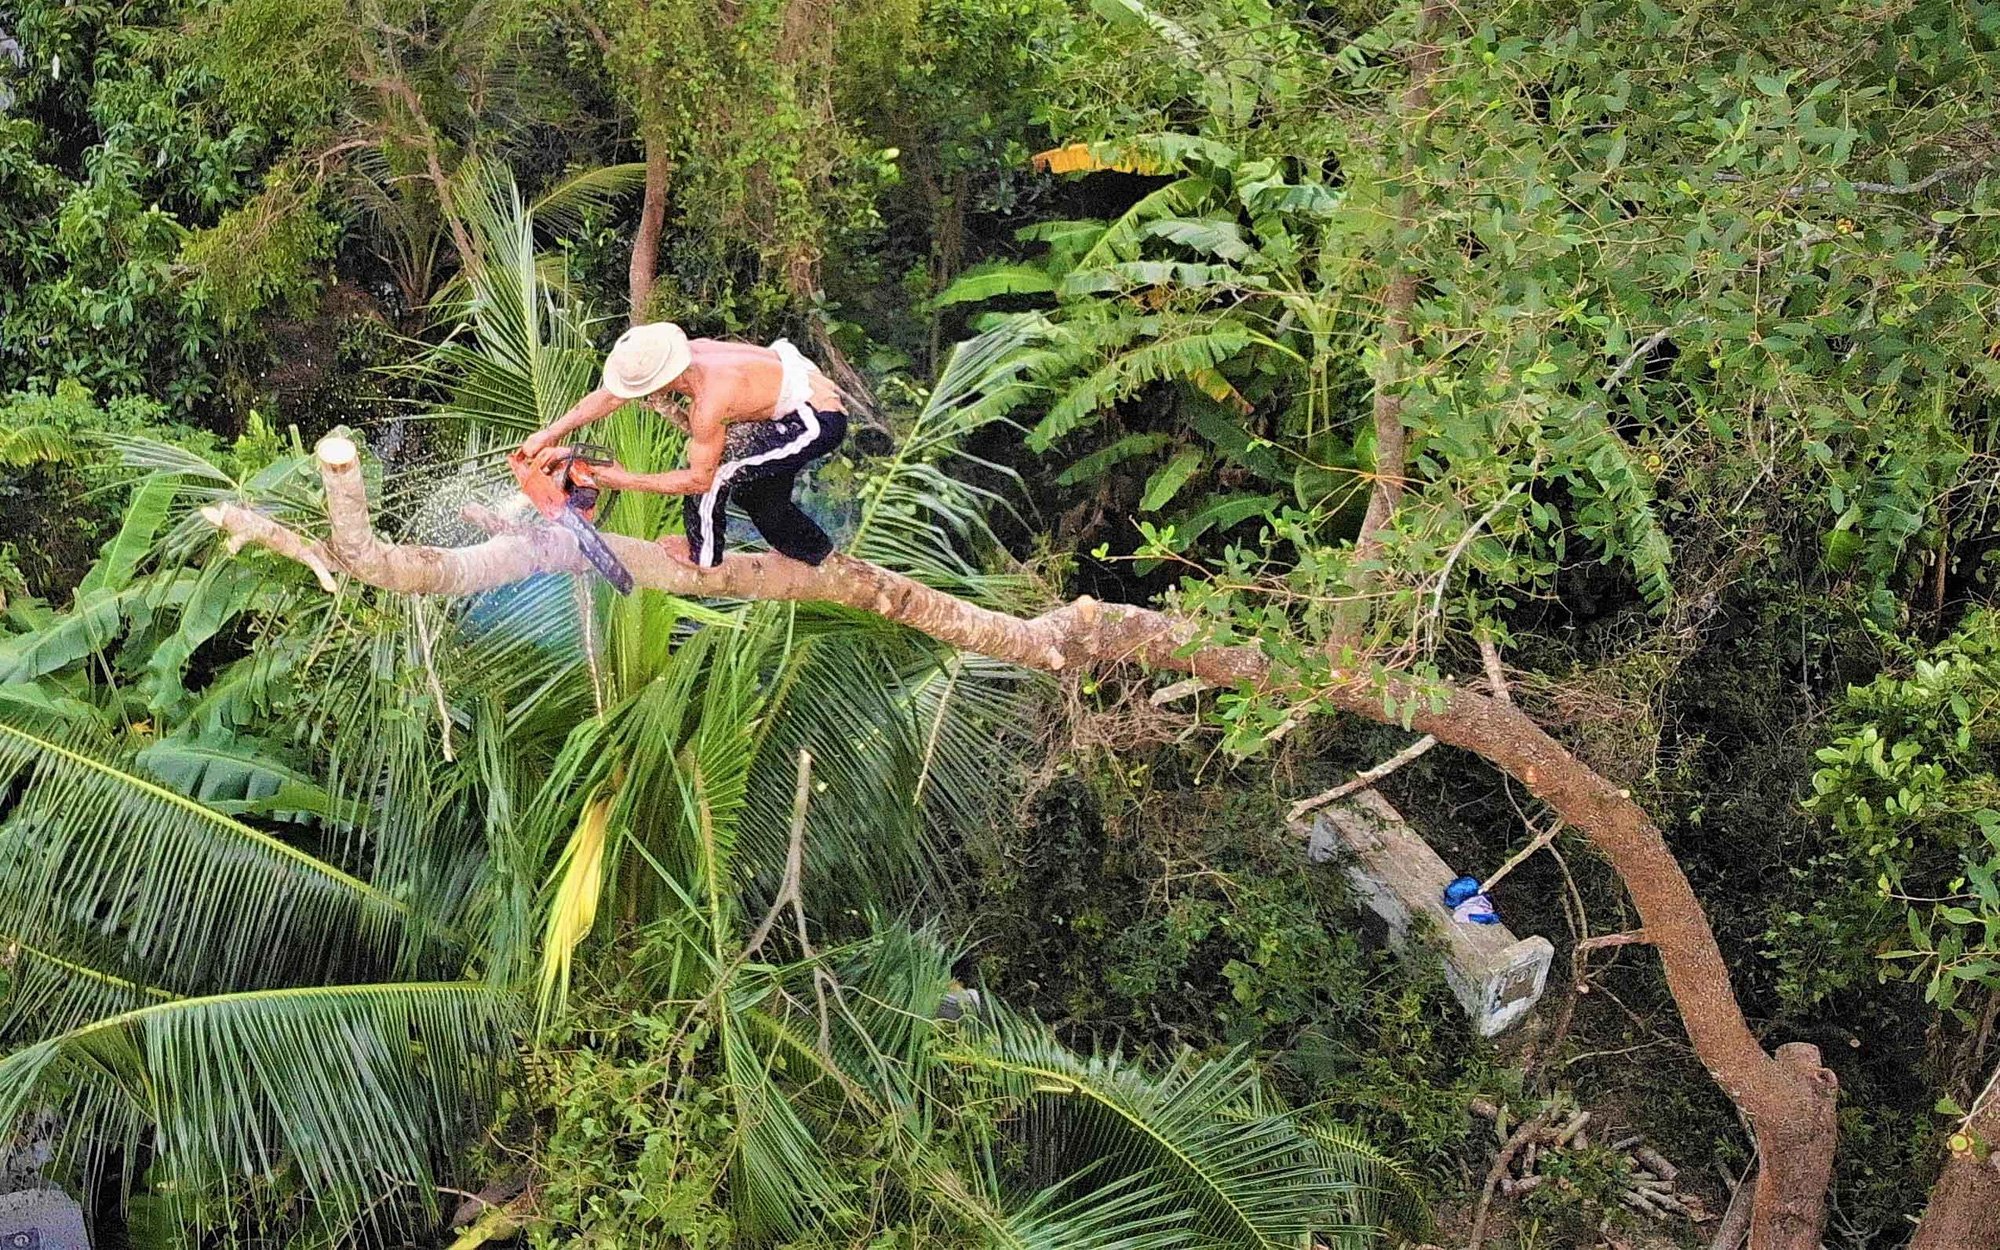 Pham Thanh Tung climbs on a tree to cut it down with his chainsaw. Photo: Mau Truong / Tuoi Tre